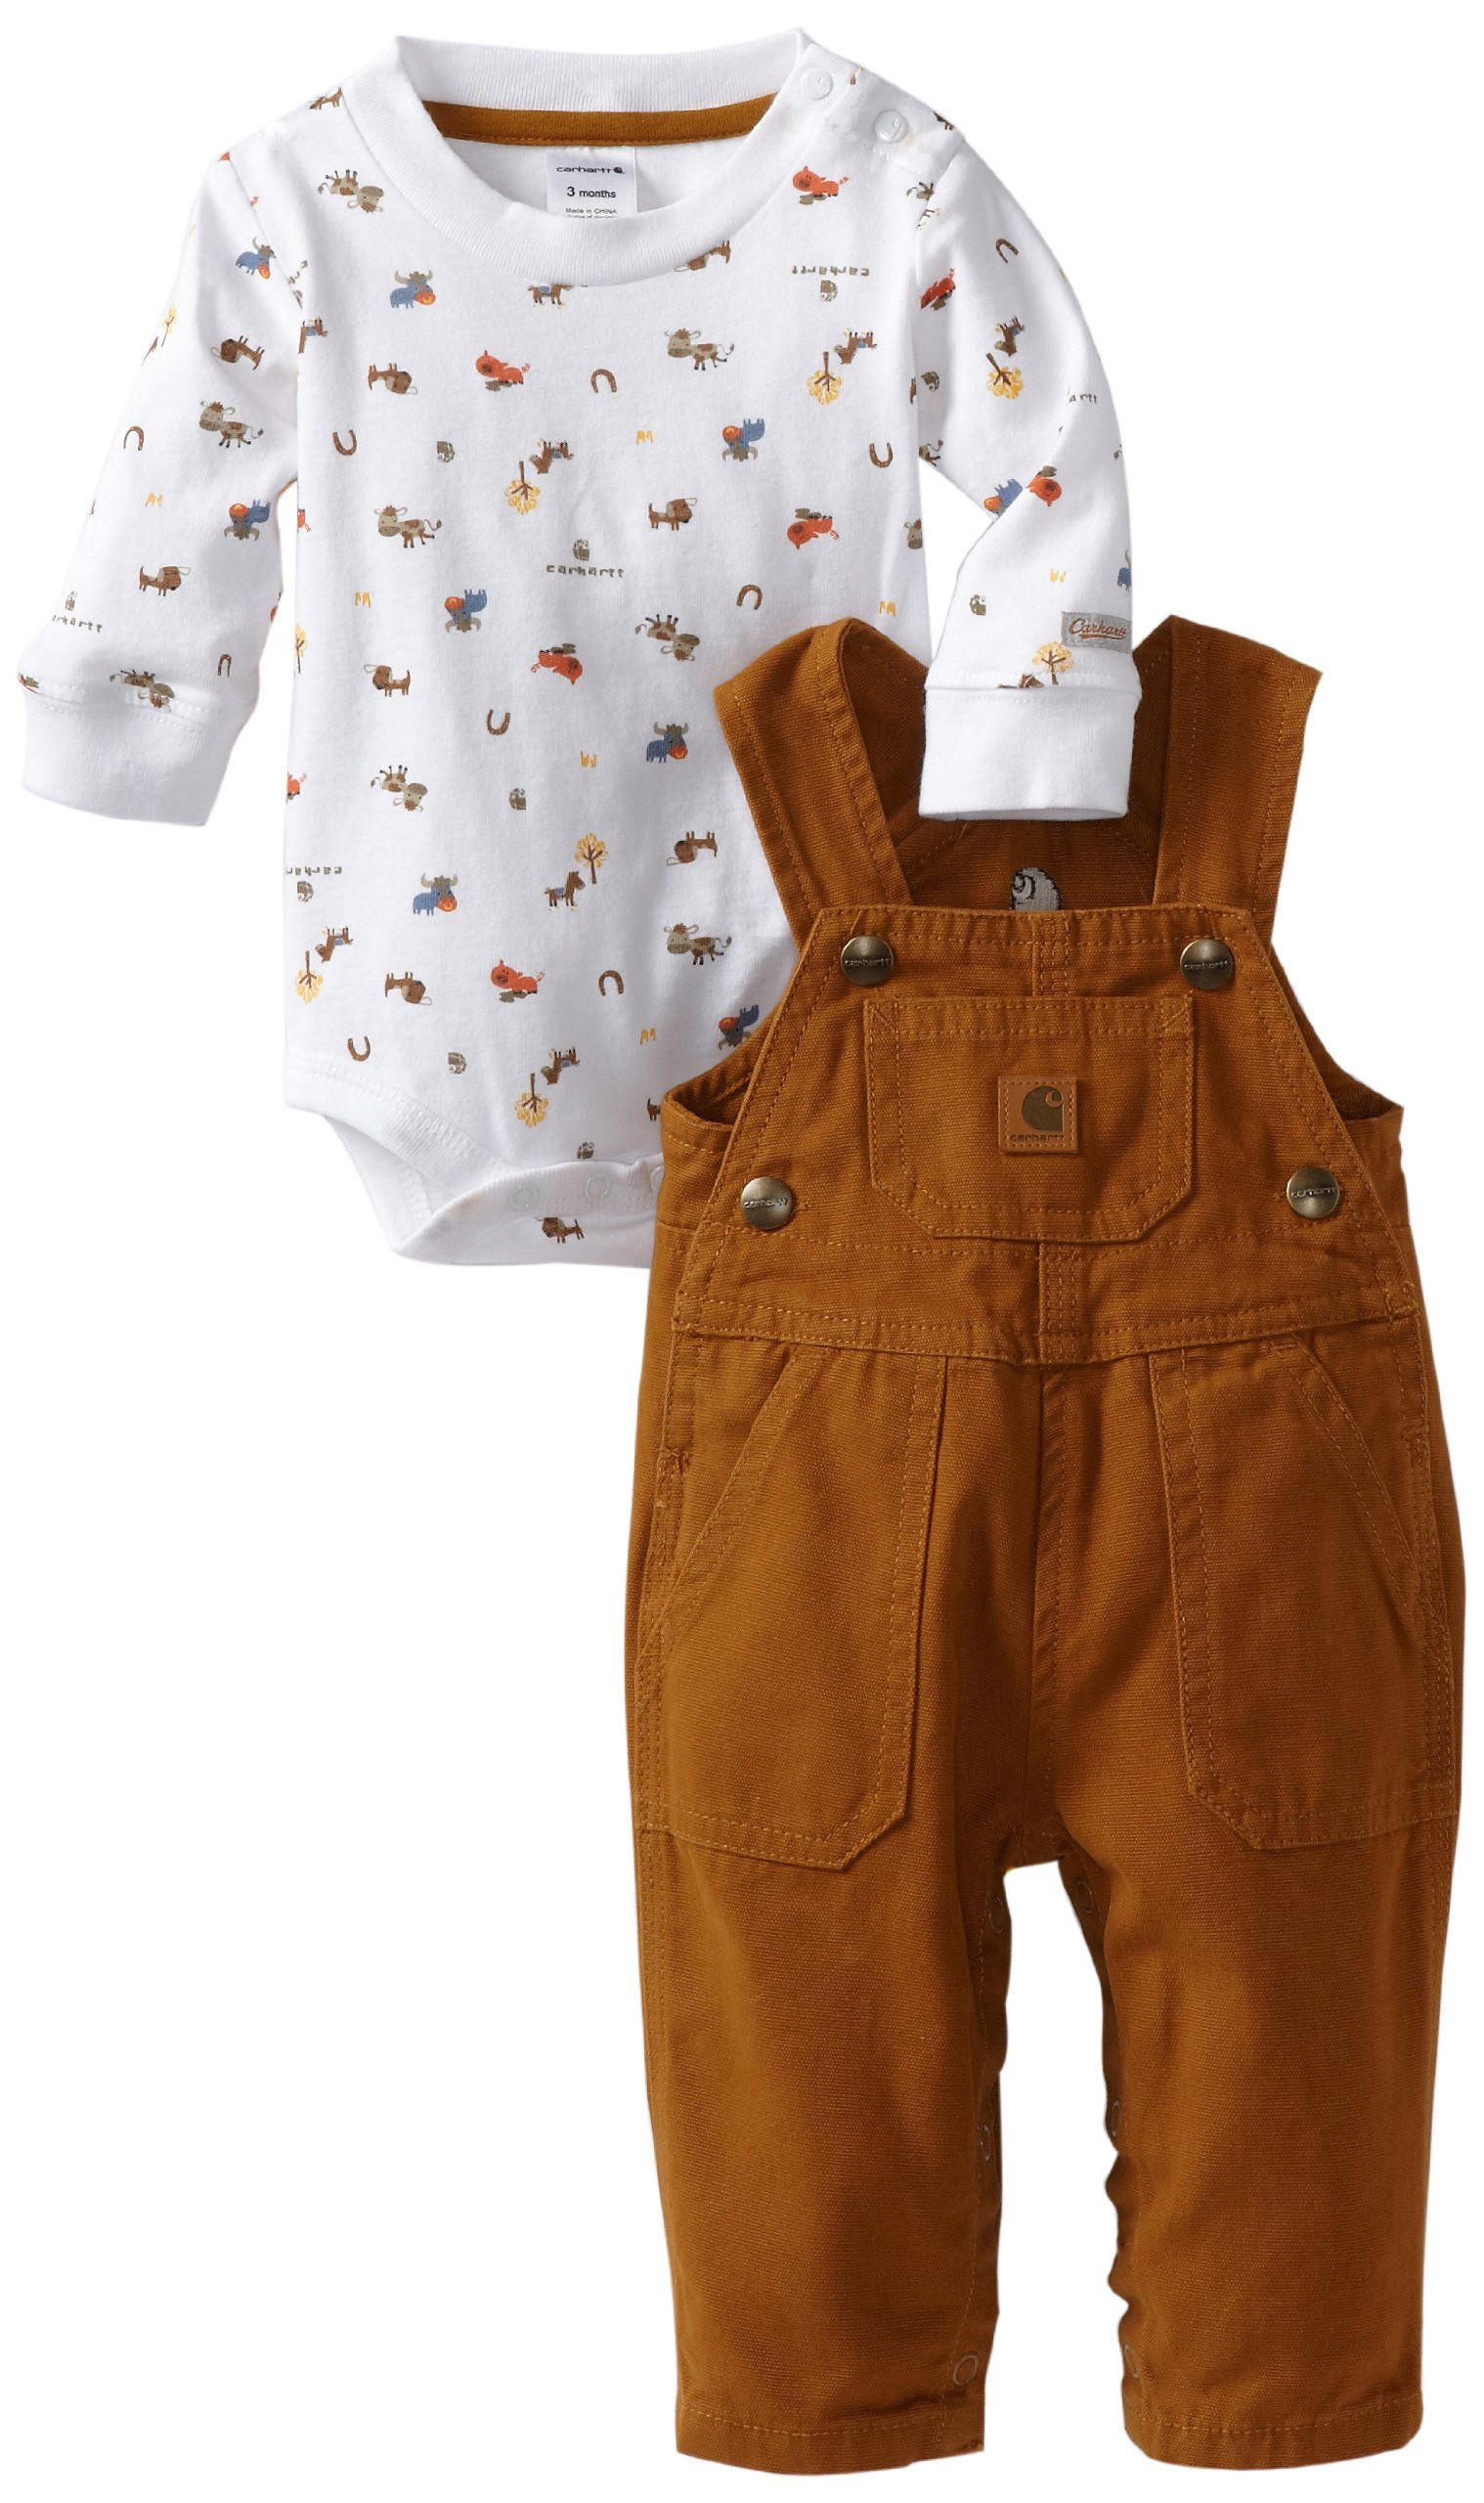 12d473b791c Amazon.com: Carhartt Baby-boys Infant Bib Adjustable Strap Overall Set, Carhartt  Brown, 6 Months: Infant And Toddler Clothing Sets: Clothing